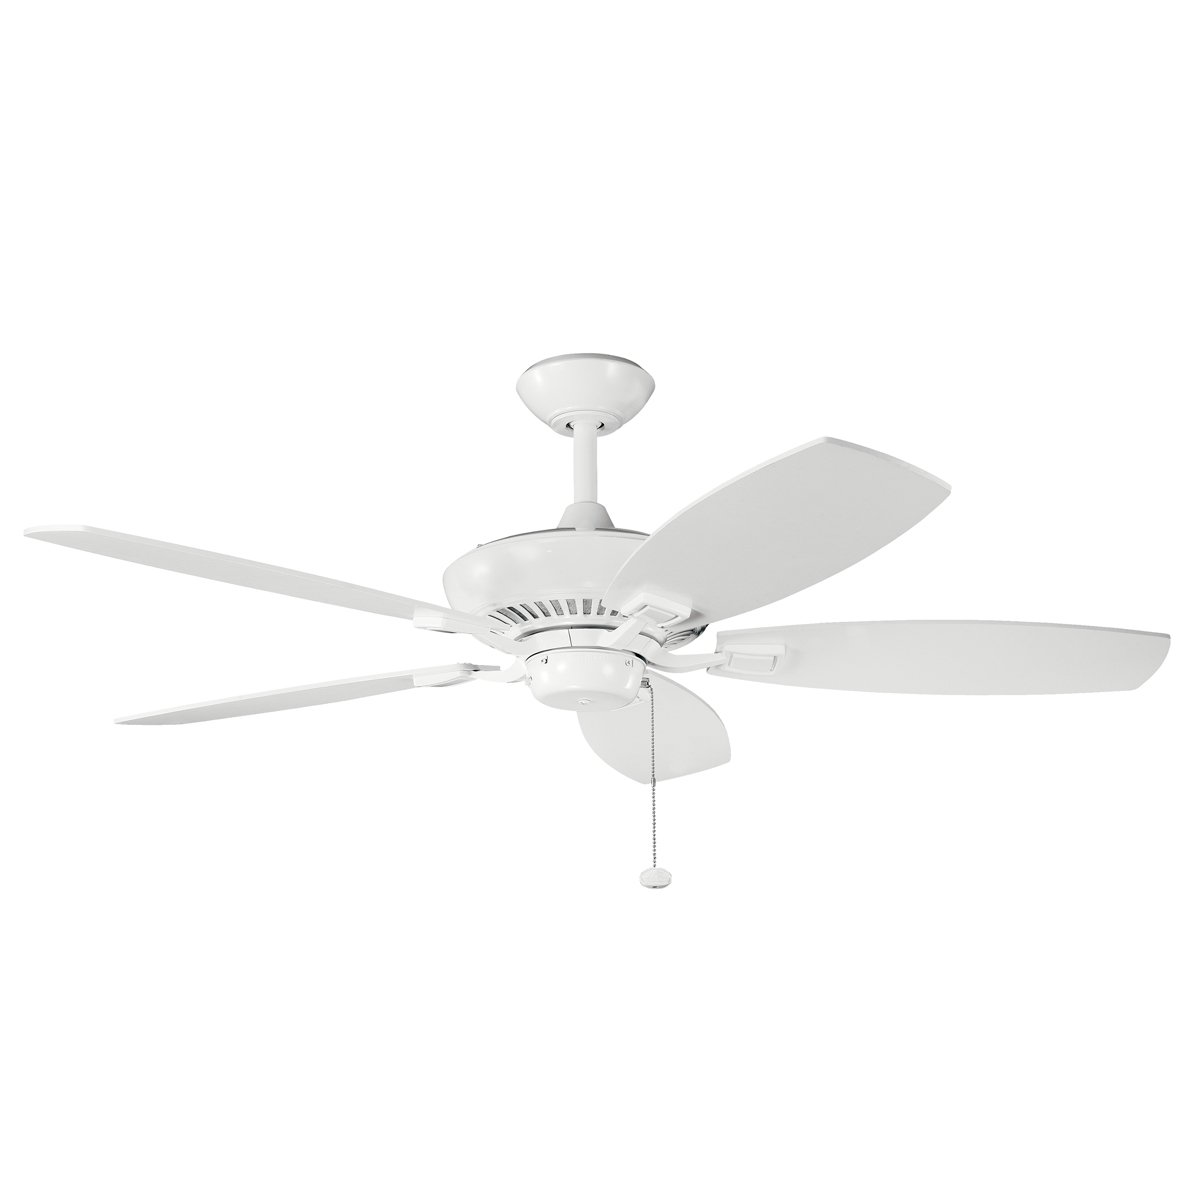 Kichler 300117DBK, Canfield Distressed Black Energy Star 52' Ceiling Fan Canfield Distressed Black Energy Star 52 Ceiling Fan